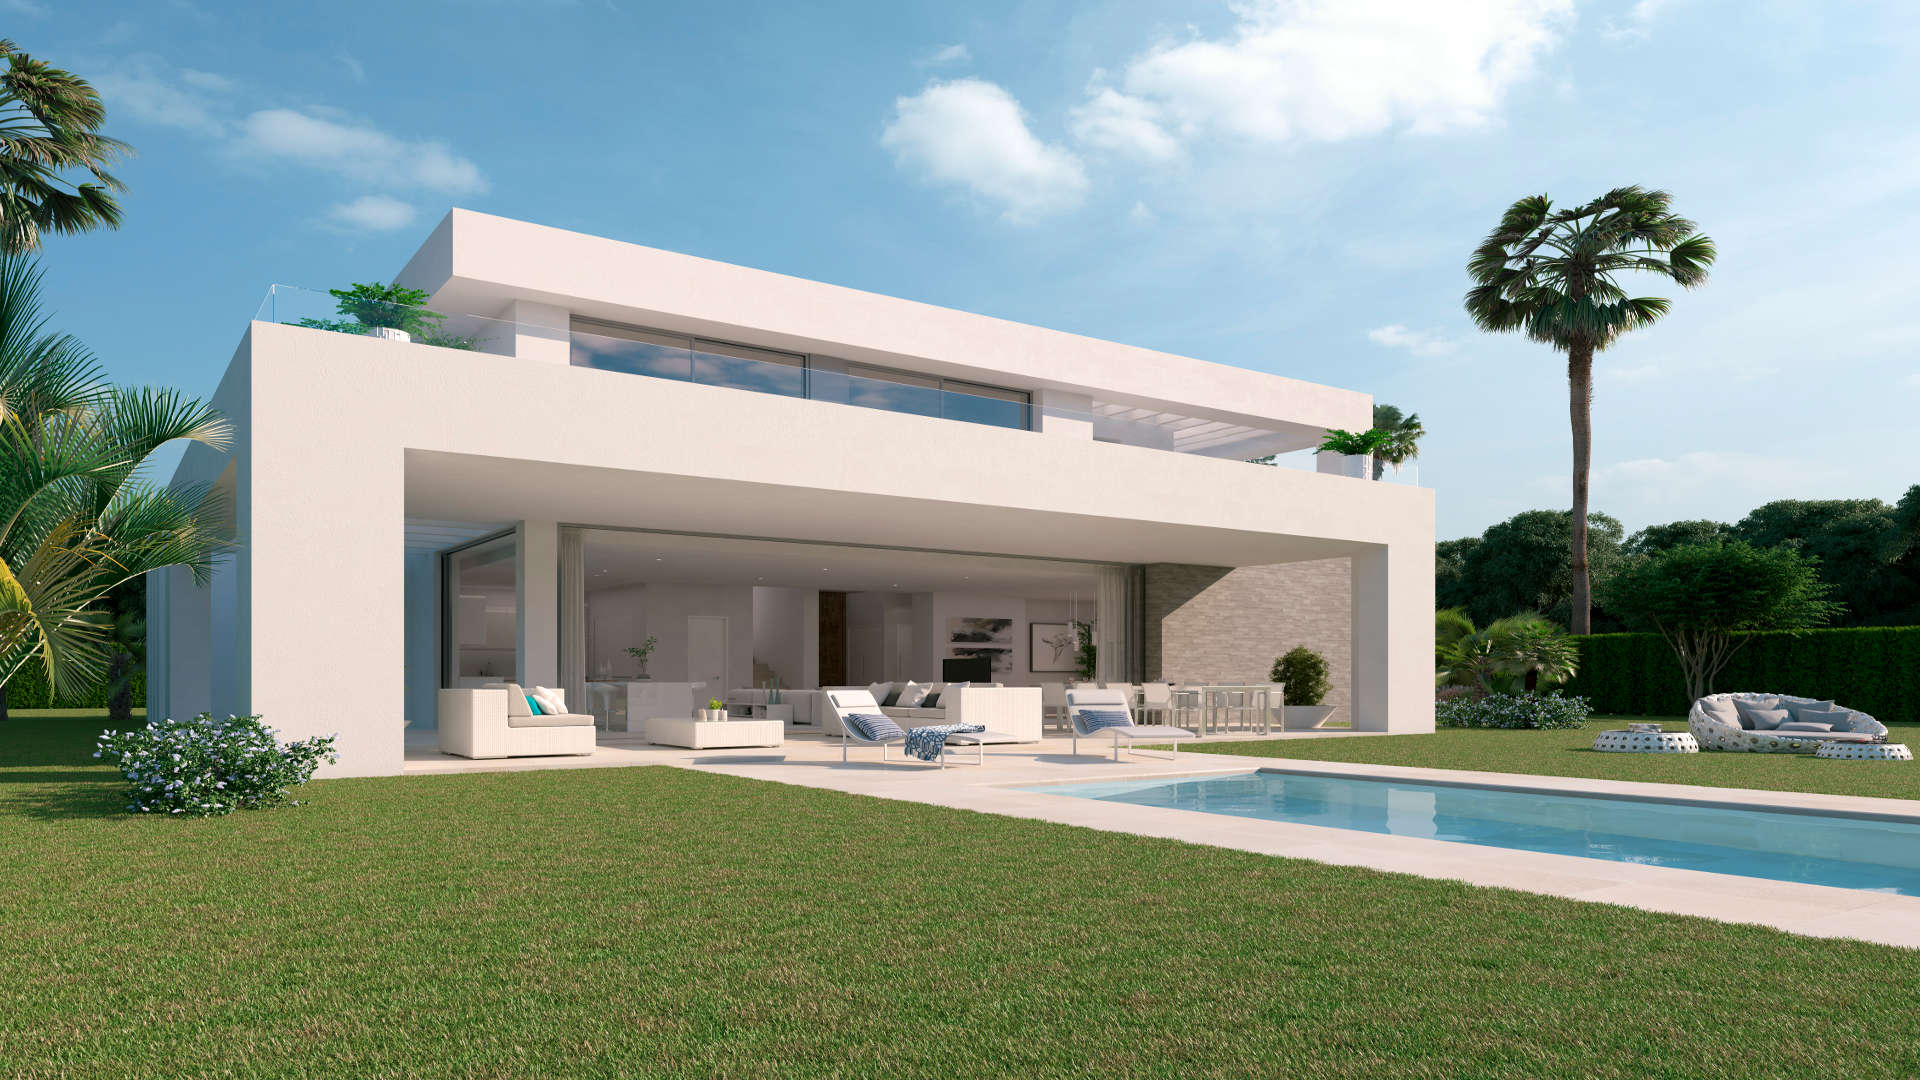 Pool Kaufen Sale La Finca De La Cala Villa For Sale Realista